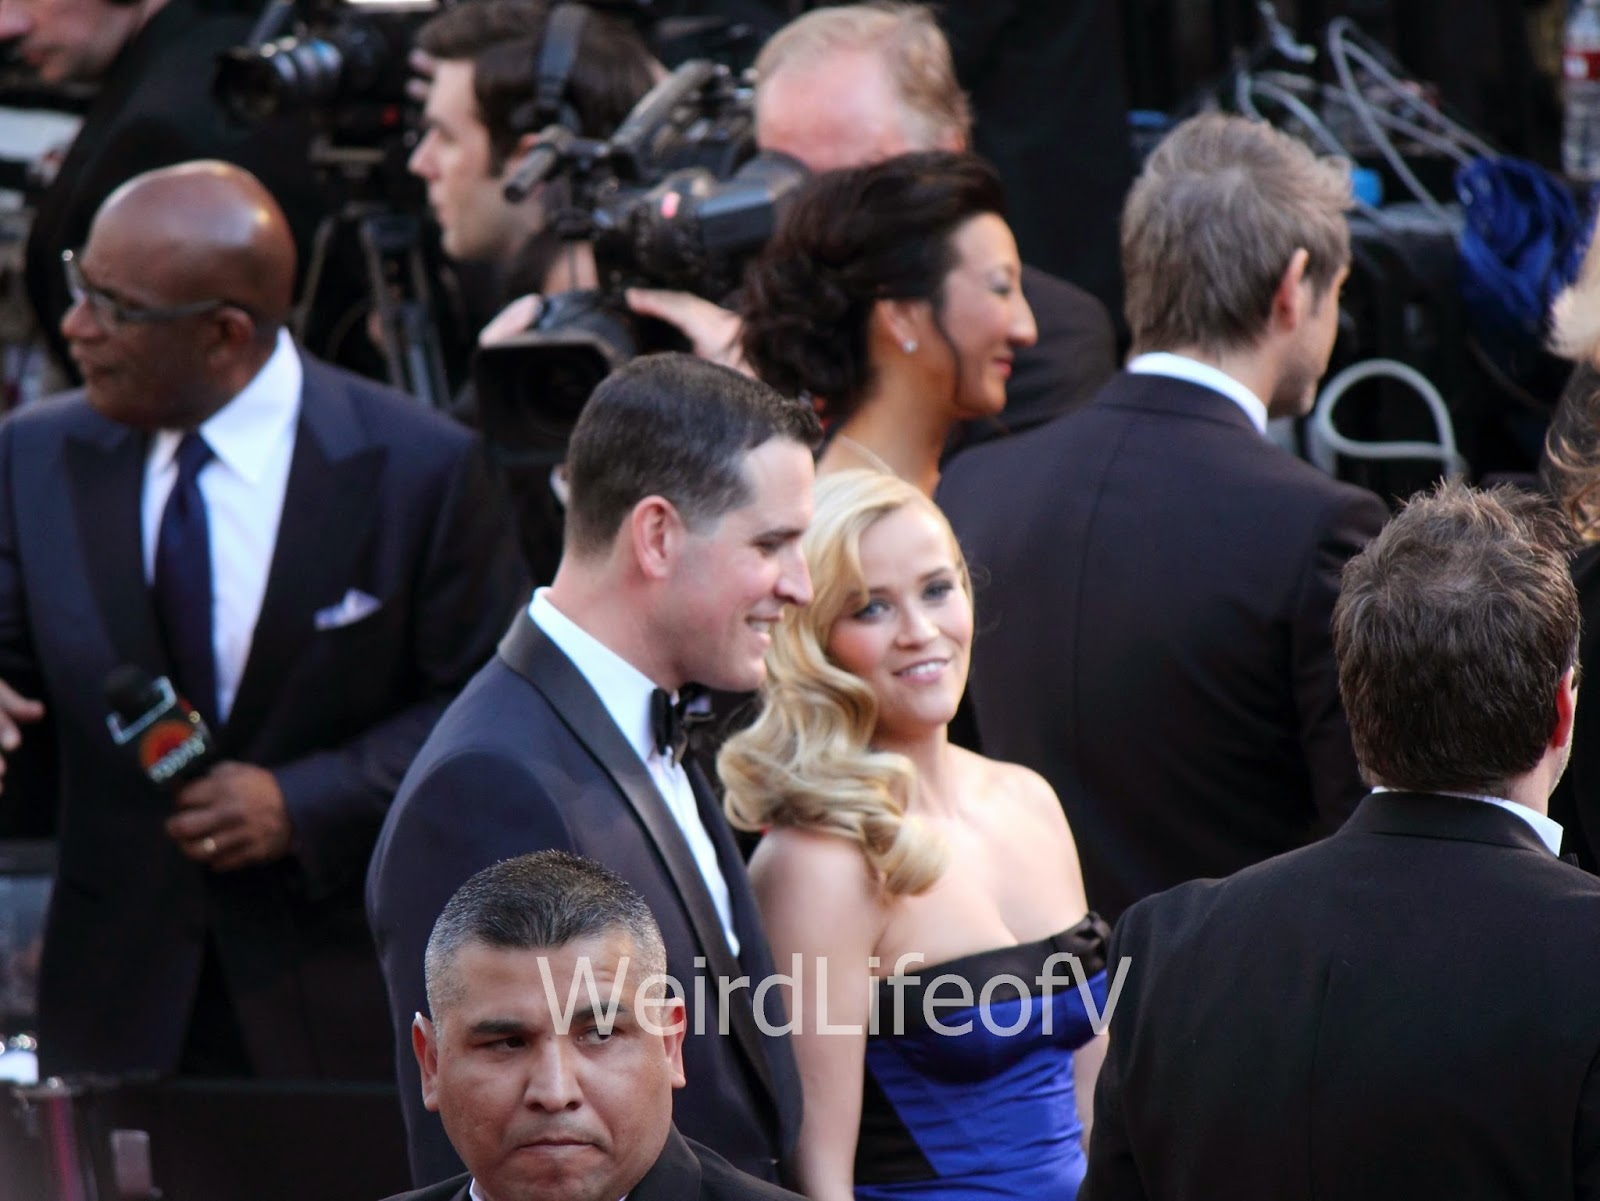 Reese Witherspoon on the red carpet for the 2013 Academy Awards